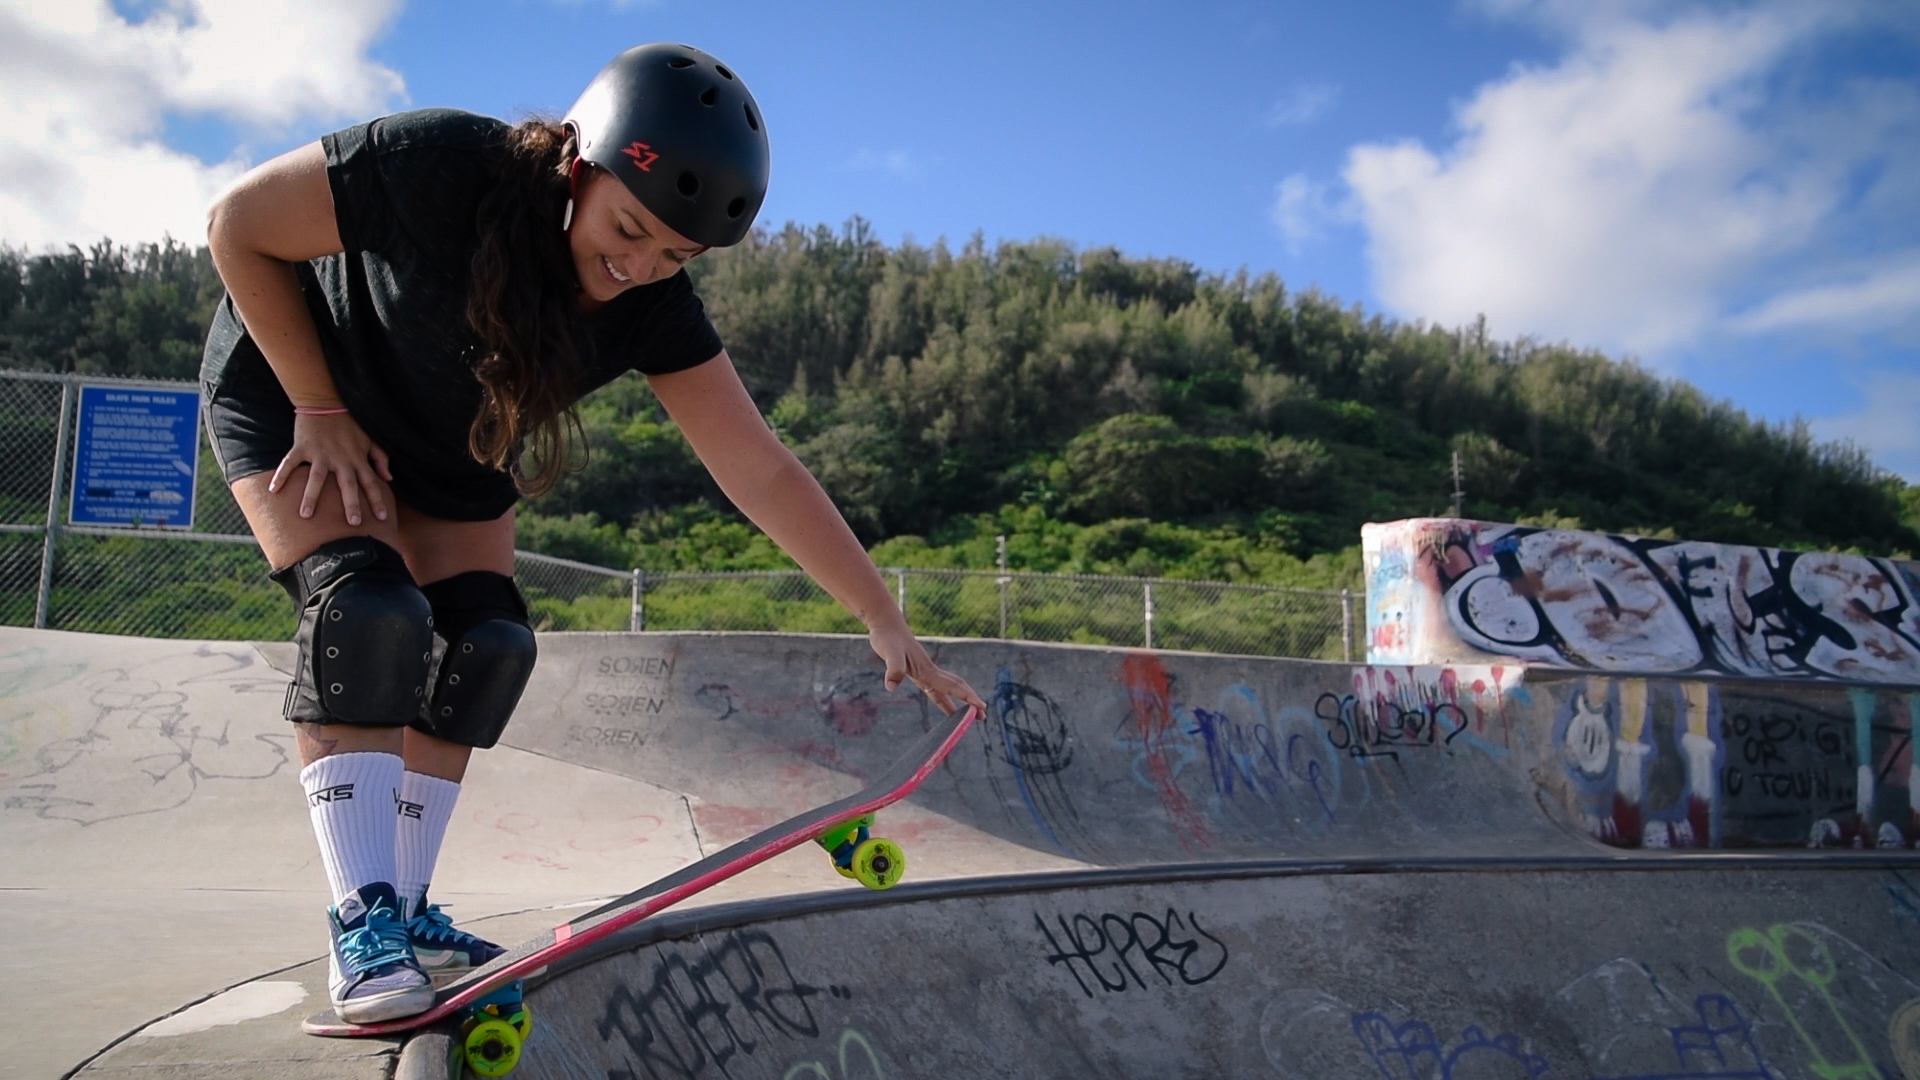 woman dropping in on skateboard by a springfield illinois photographer lydia stuemke